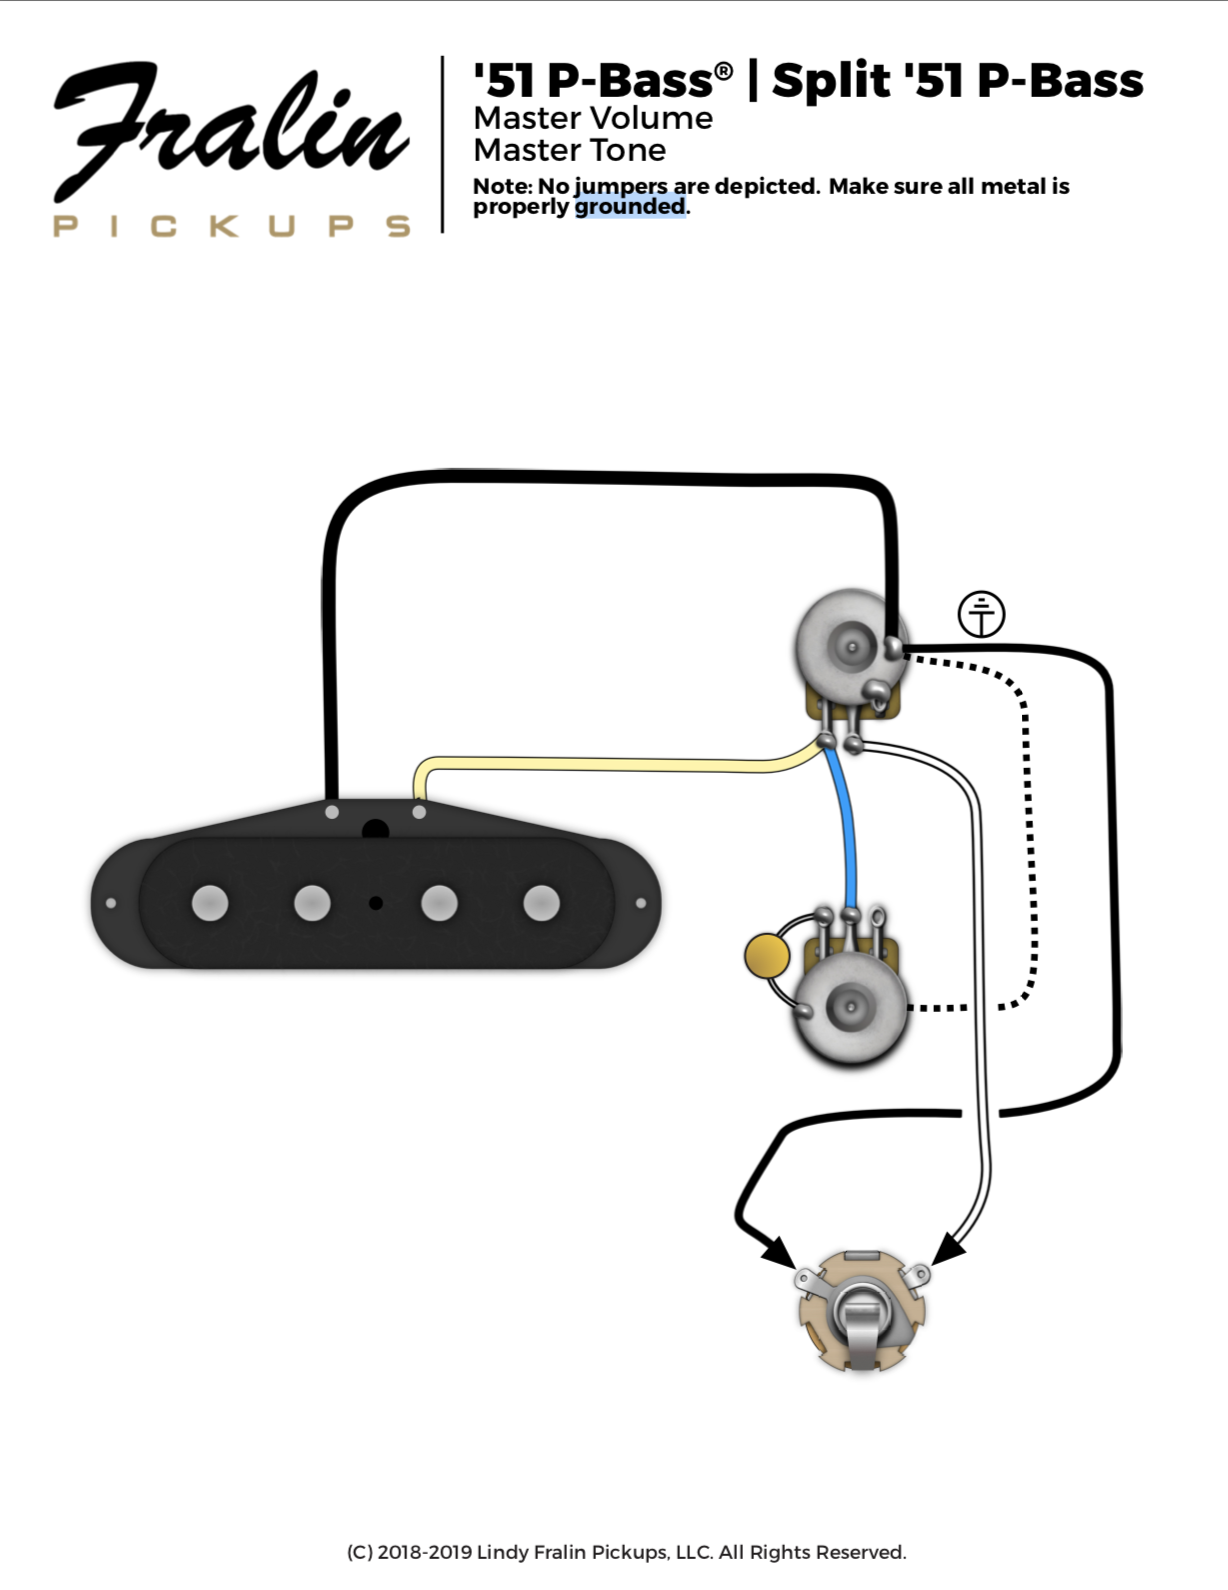 Which of these wiring diagrams do you prefer for '51 Precision? |  TalkBass.comTalkBass.com